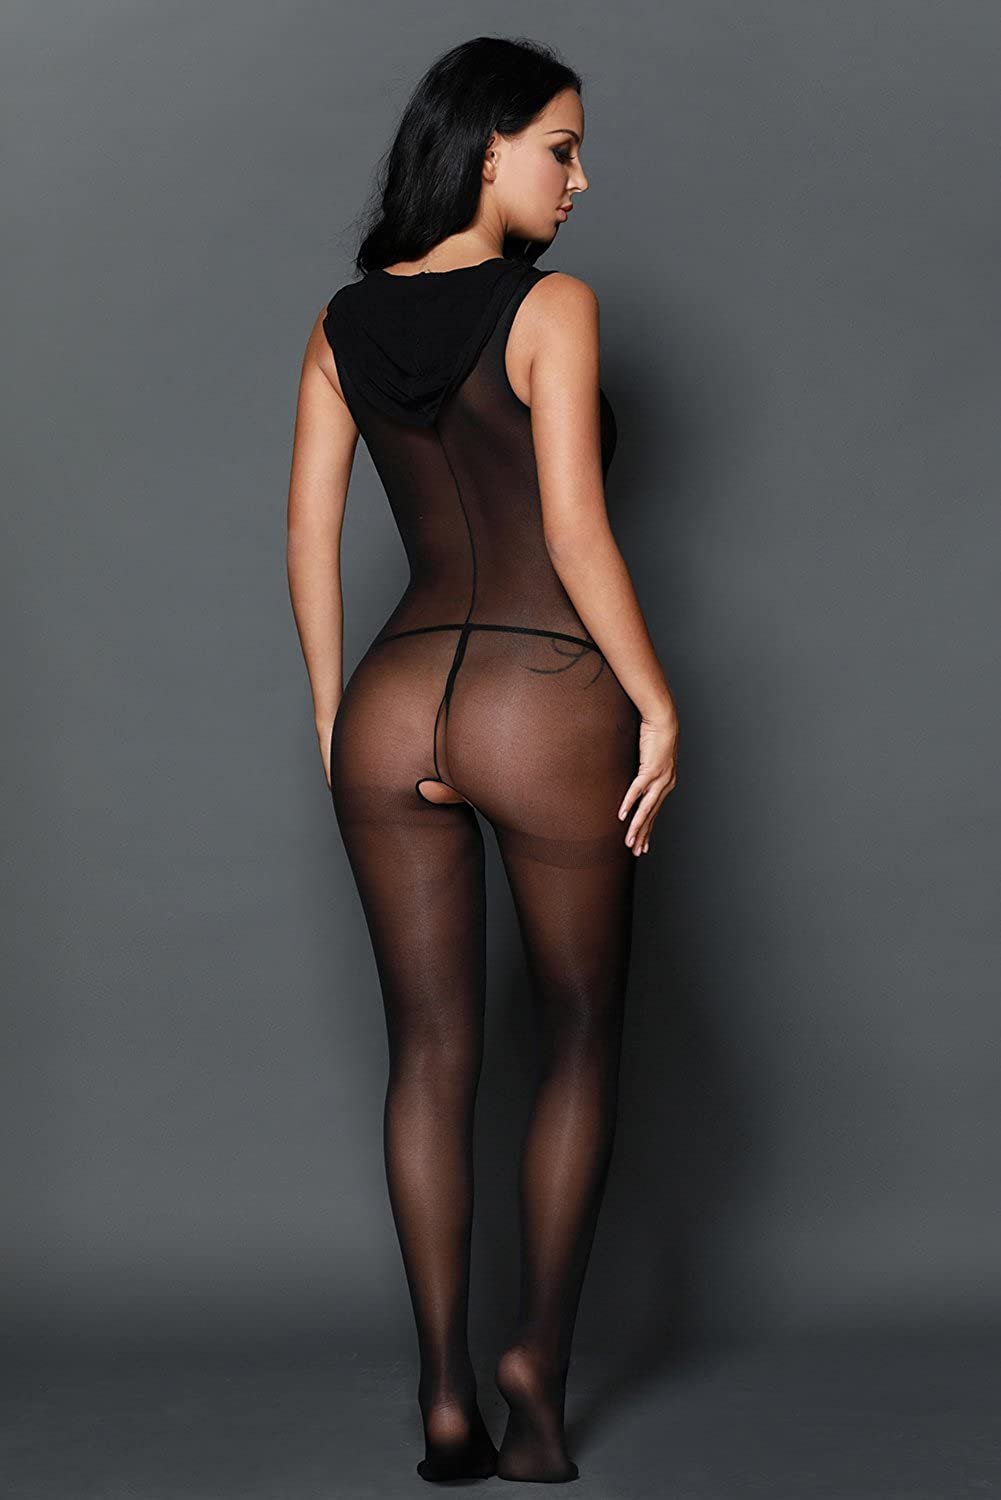 9a7131f3057 Sexy Black Nylon Hooded Bodystocking Crotchless Open Crotch Size 8 10 12 14  16  Amazon.co.uk  Clothing